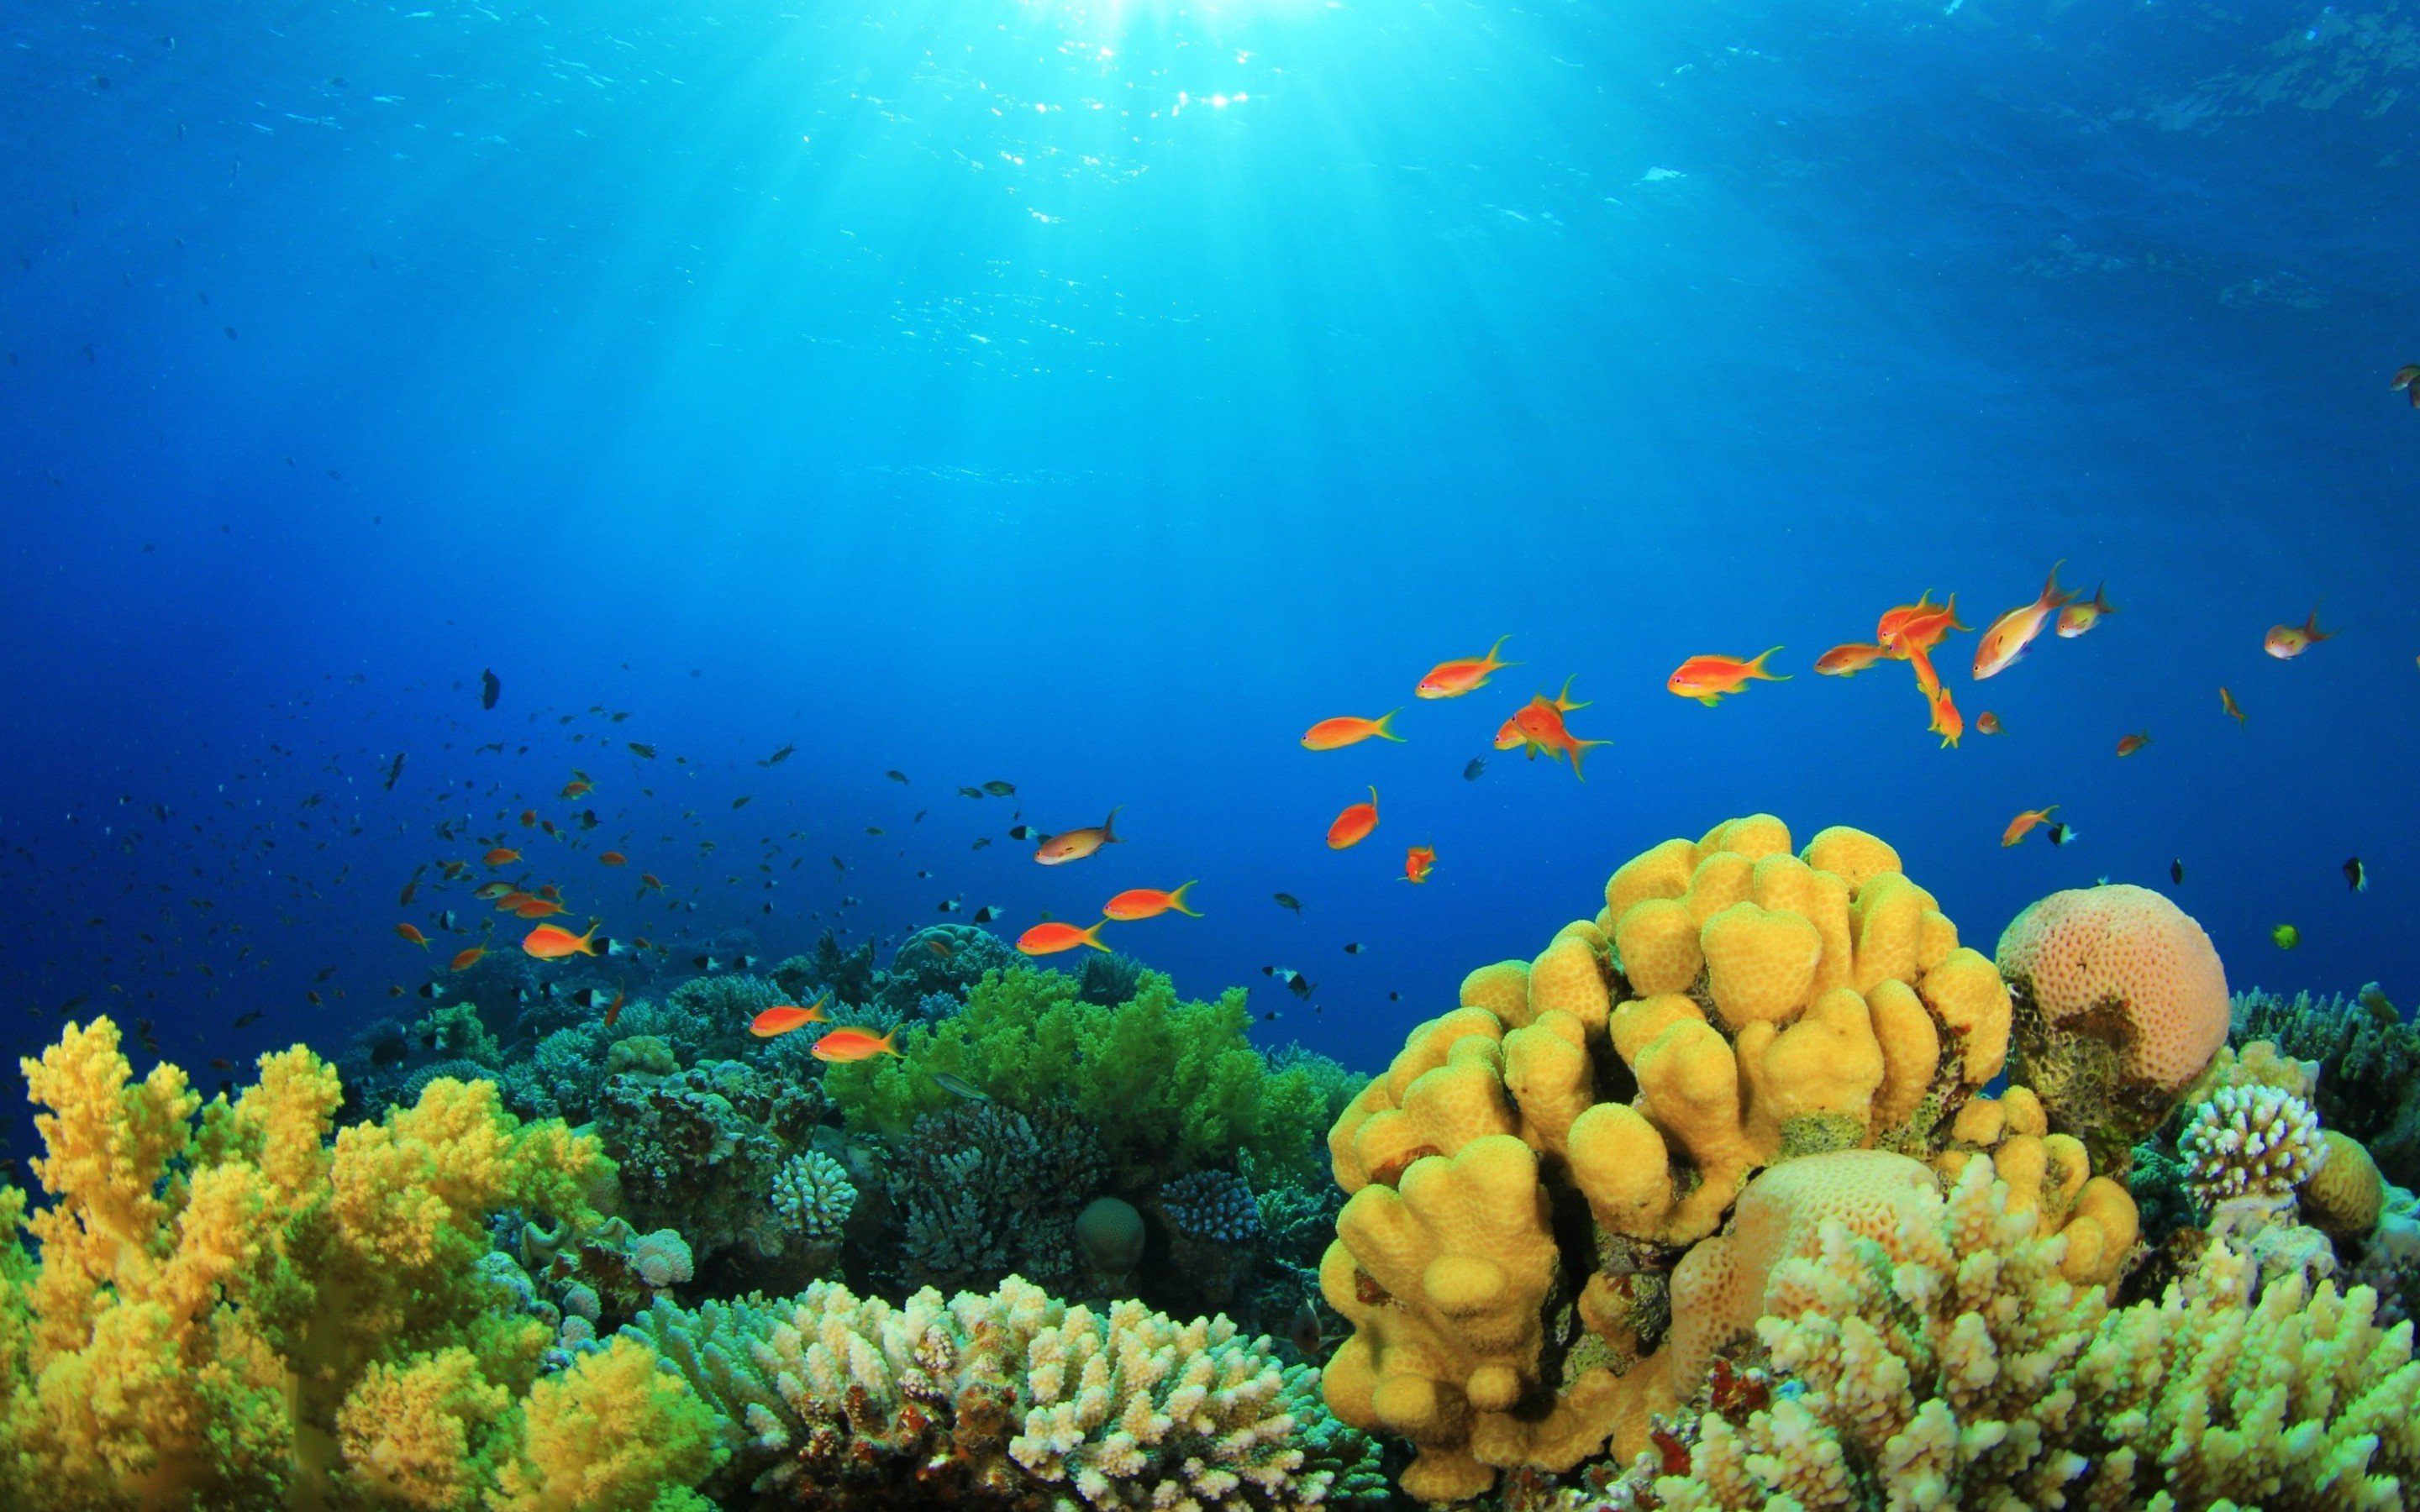 Underwater wallpapers hd for desktop backgrounds - Underwater desktop background ...